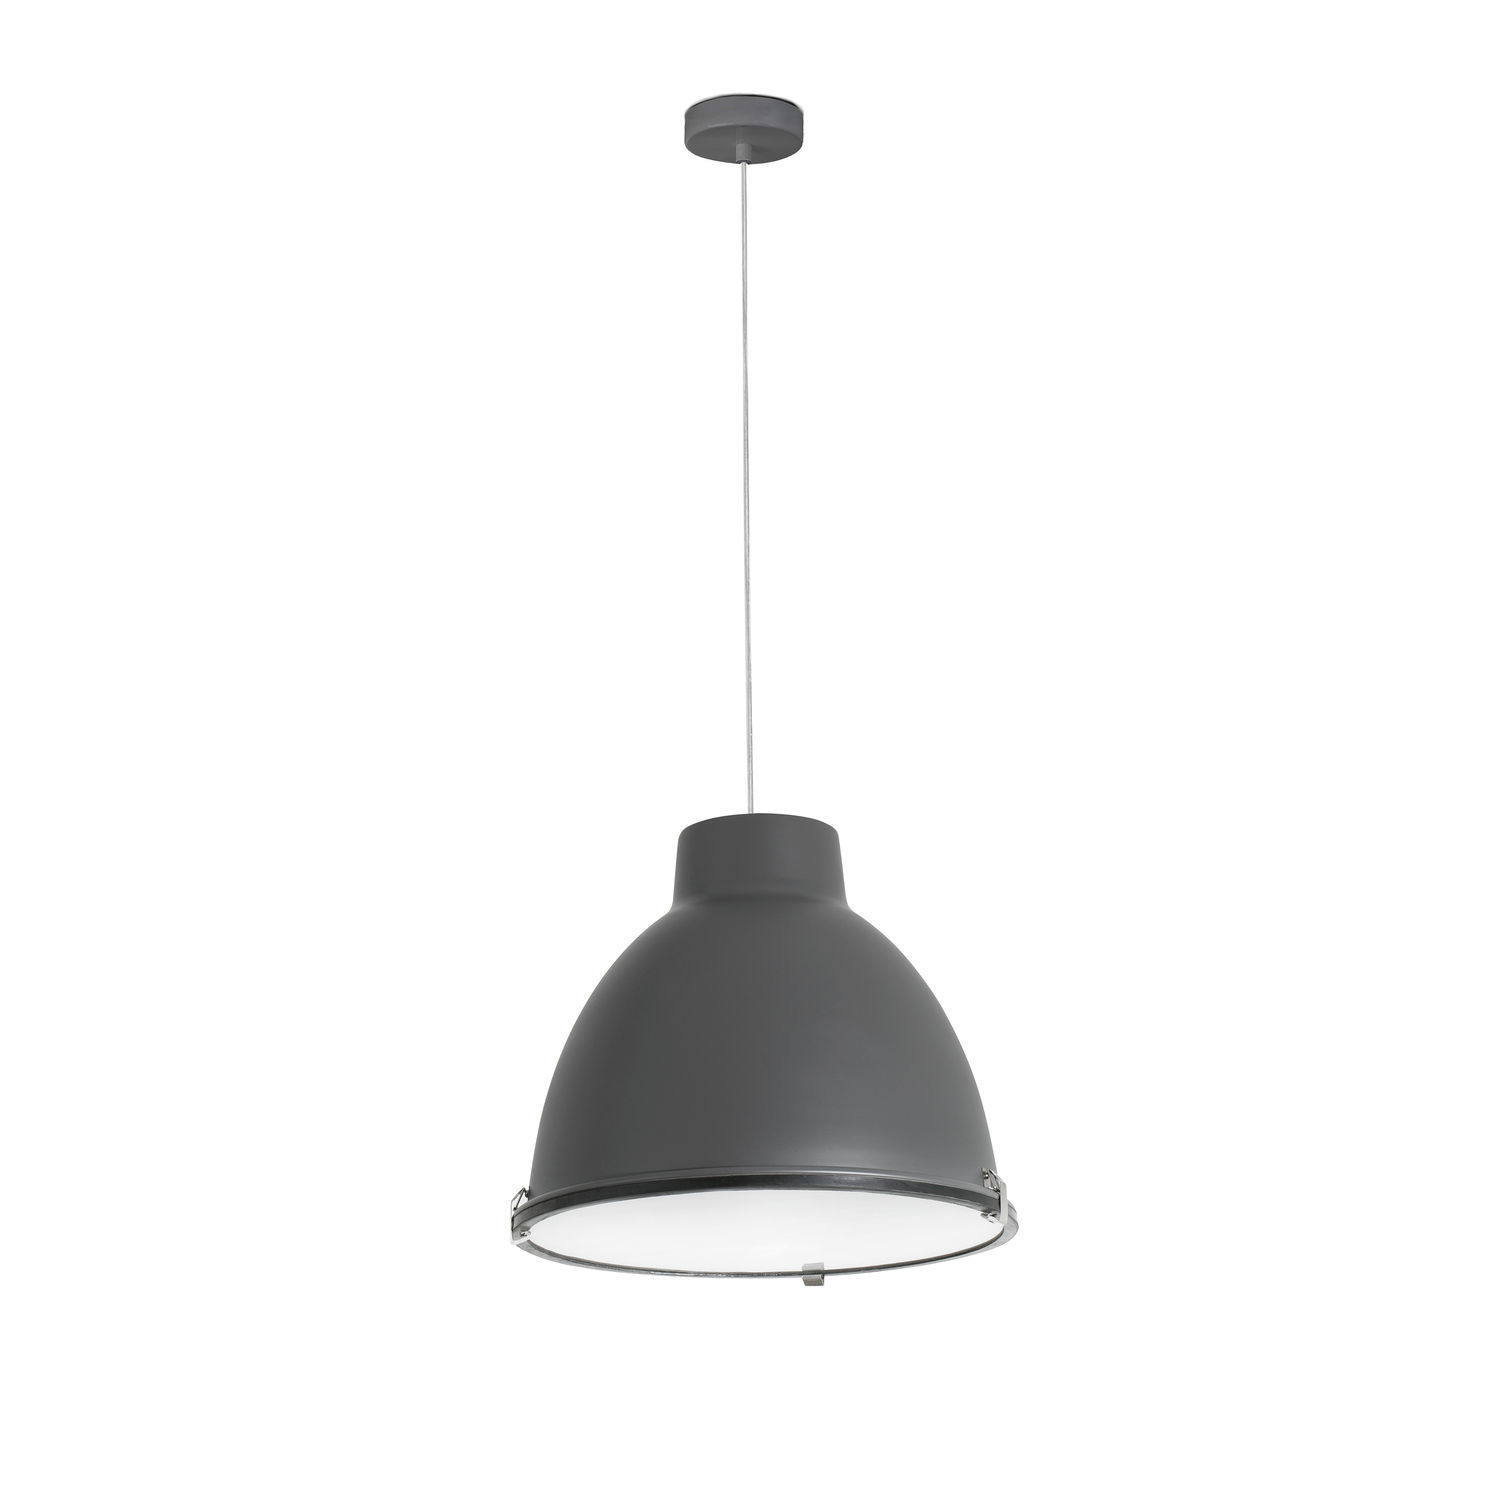 Lampe Suspension Style Industriel Suspension De Style Industriel En Acier En Verre